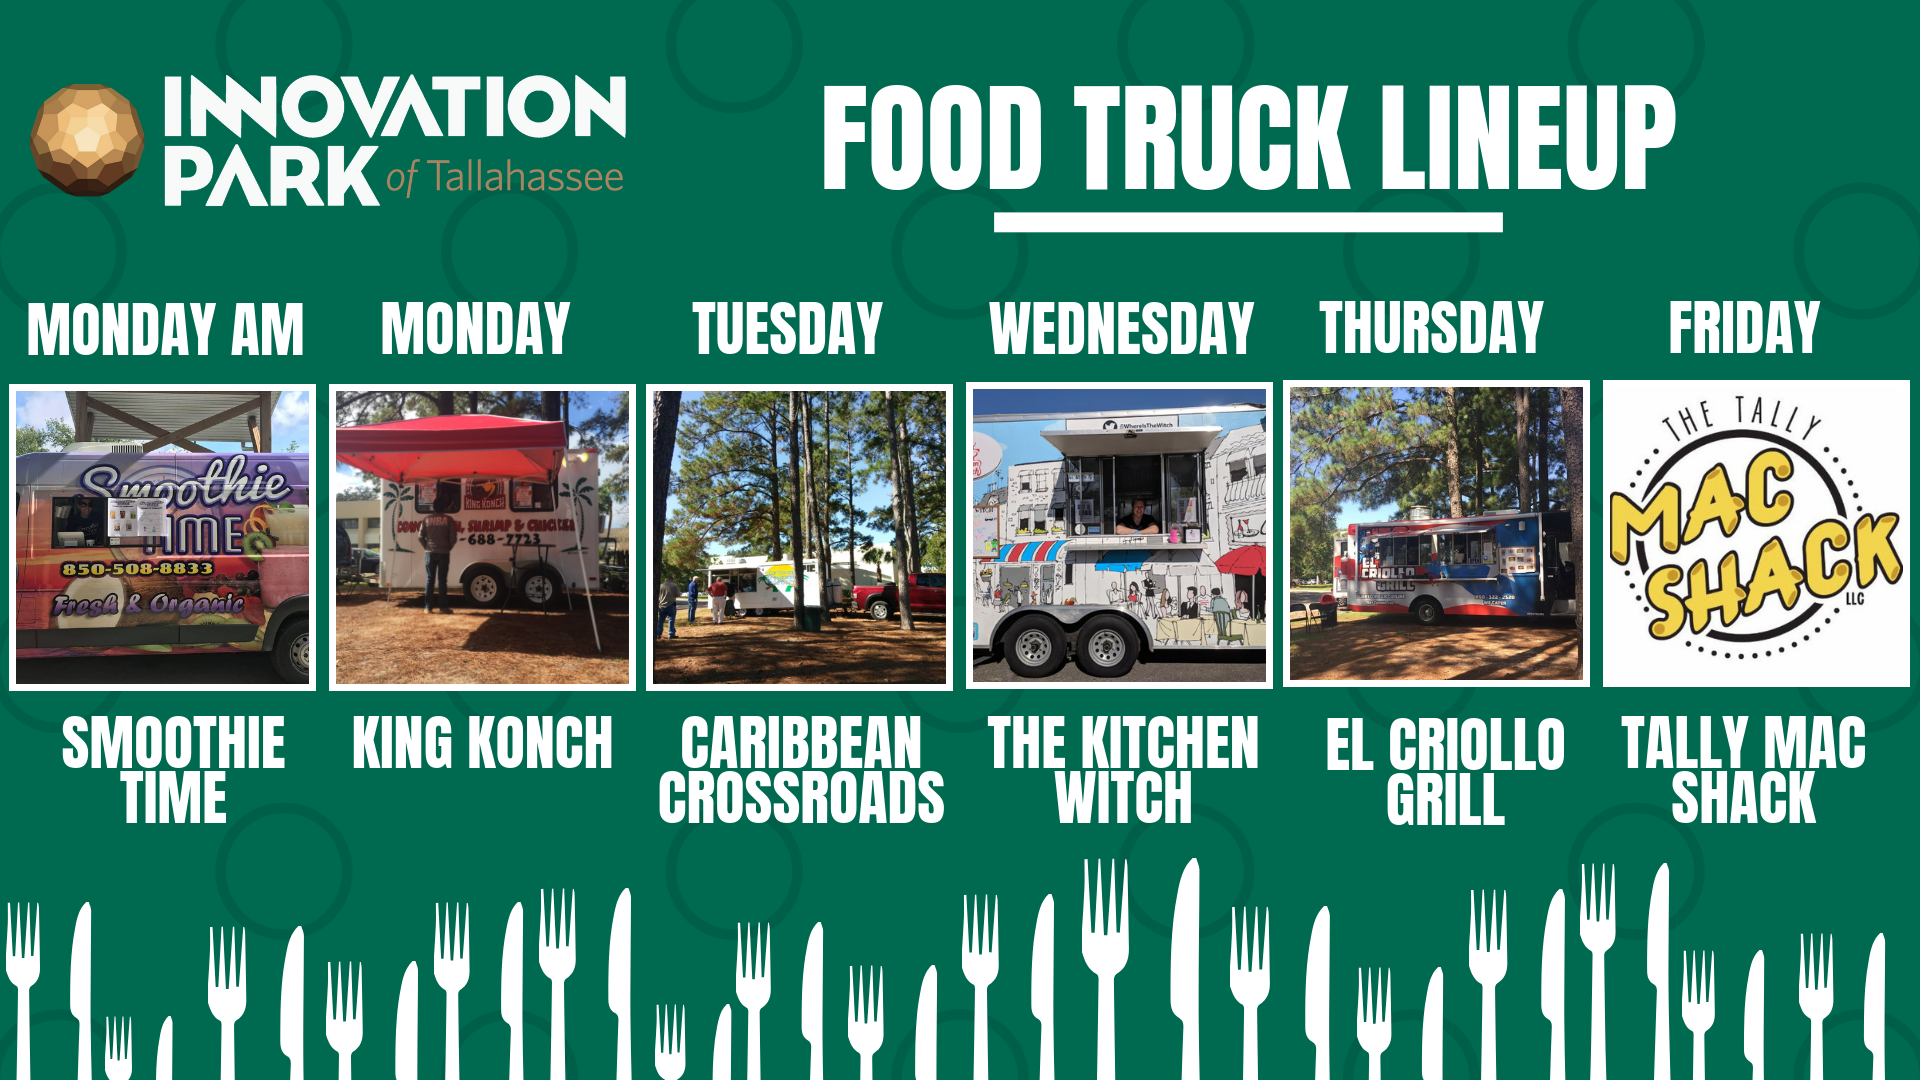 foodtruck updates at Innovation park of tallahassee